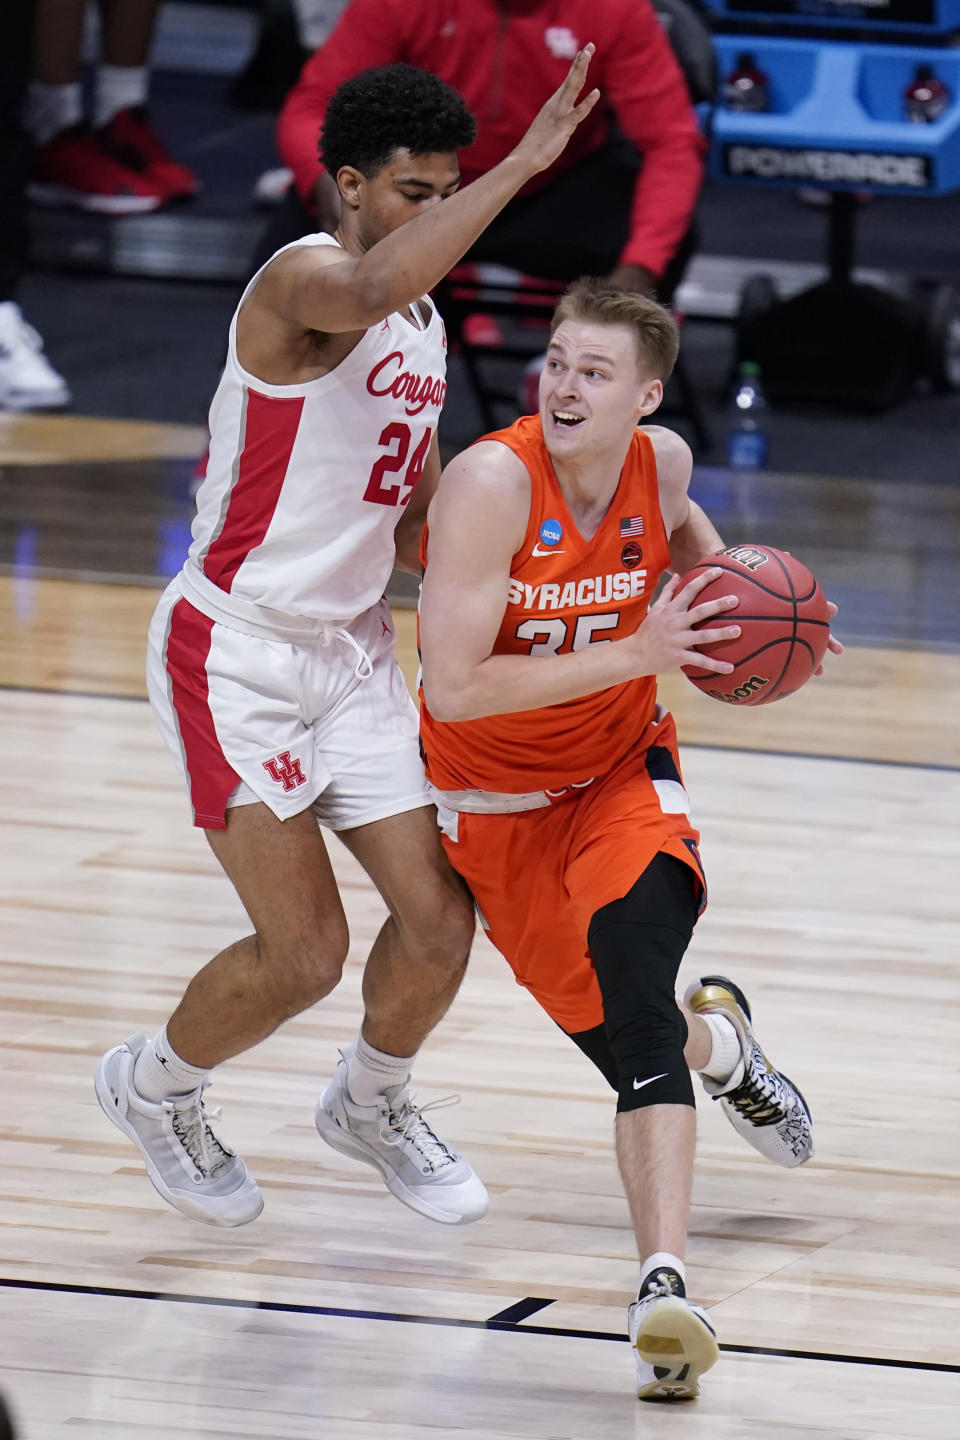 Syracuse guard Buddy Boeheim (35) drives against Houston guard Quentin Grimes (24) in the first half of a Sweet 16 game in the NCAA men's college basketball tournament at Hinkle Fieldhouse in Indianapolis, Saturday, March 27, 2021. (AP Photo/Michael Conroy)